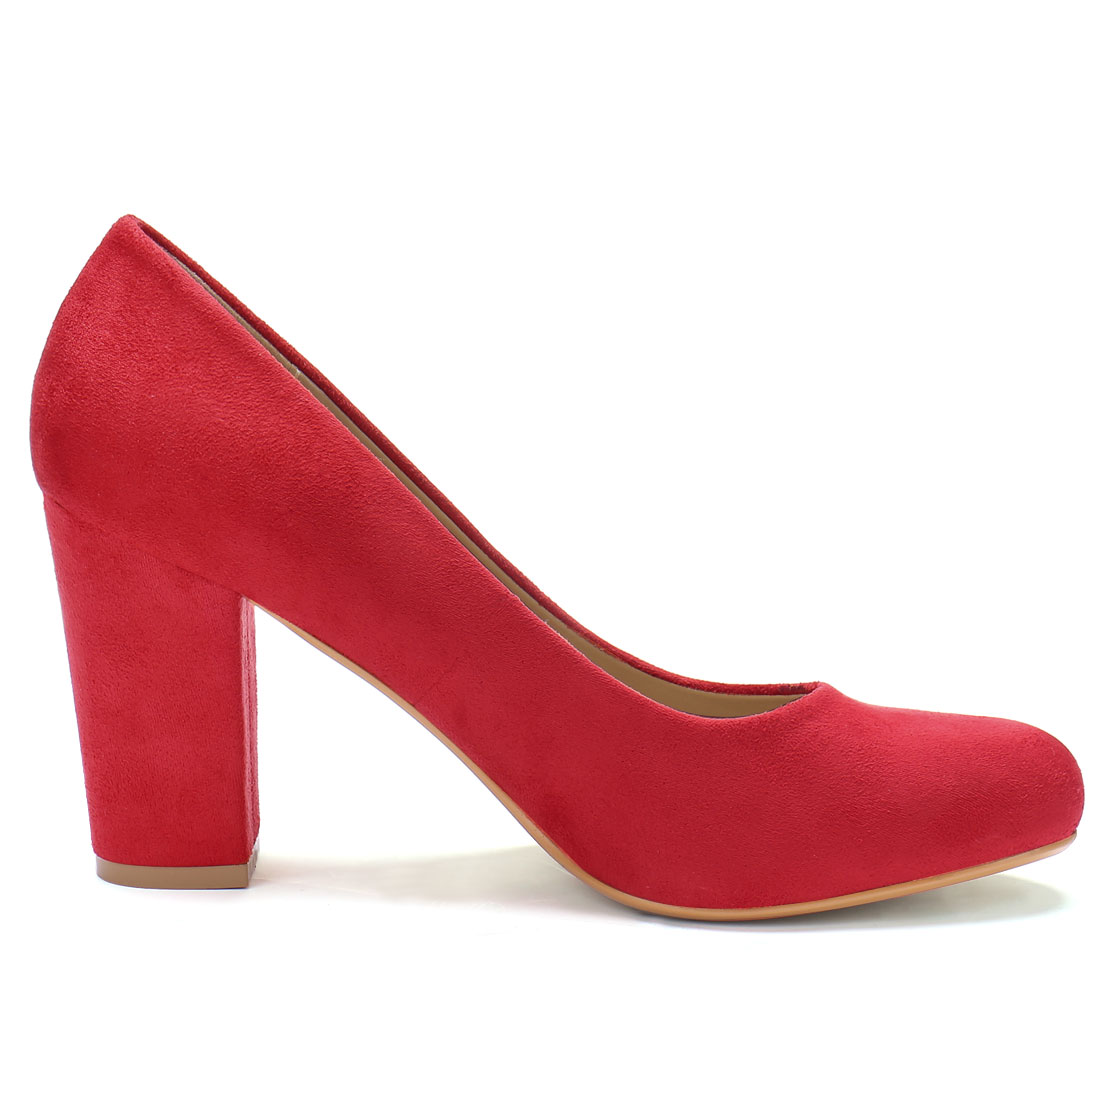 Ladies Rounded Toe High Block Heel Classic Pumps Red US 6 - image 6 of 7